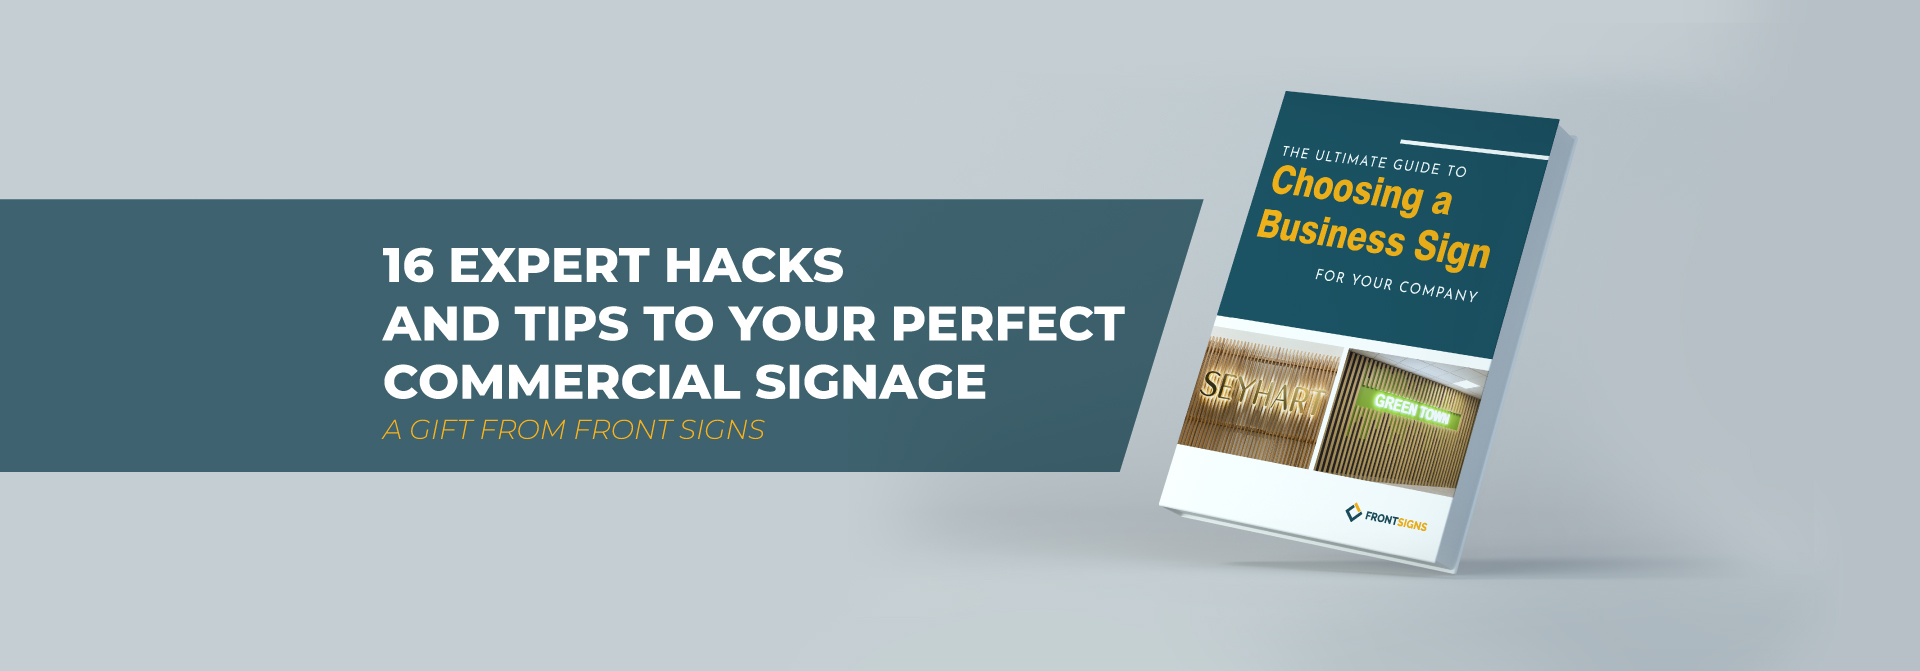 Guide to Choosing a Business Sign